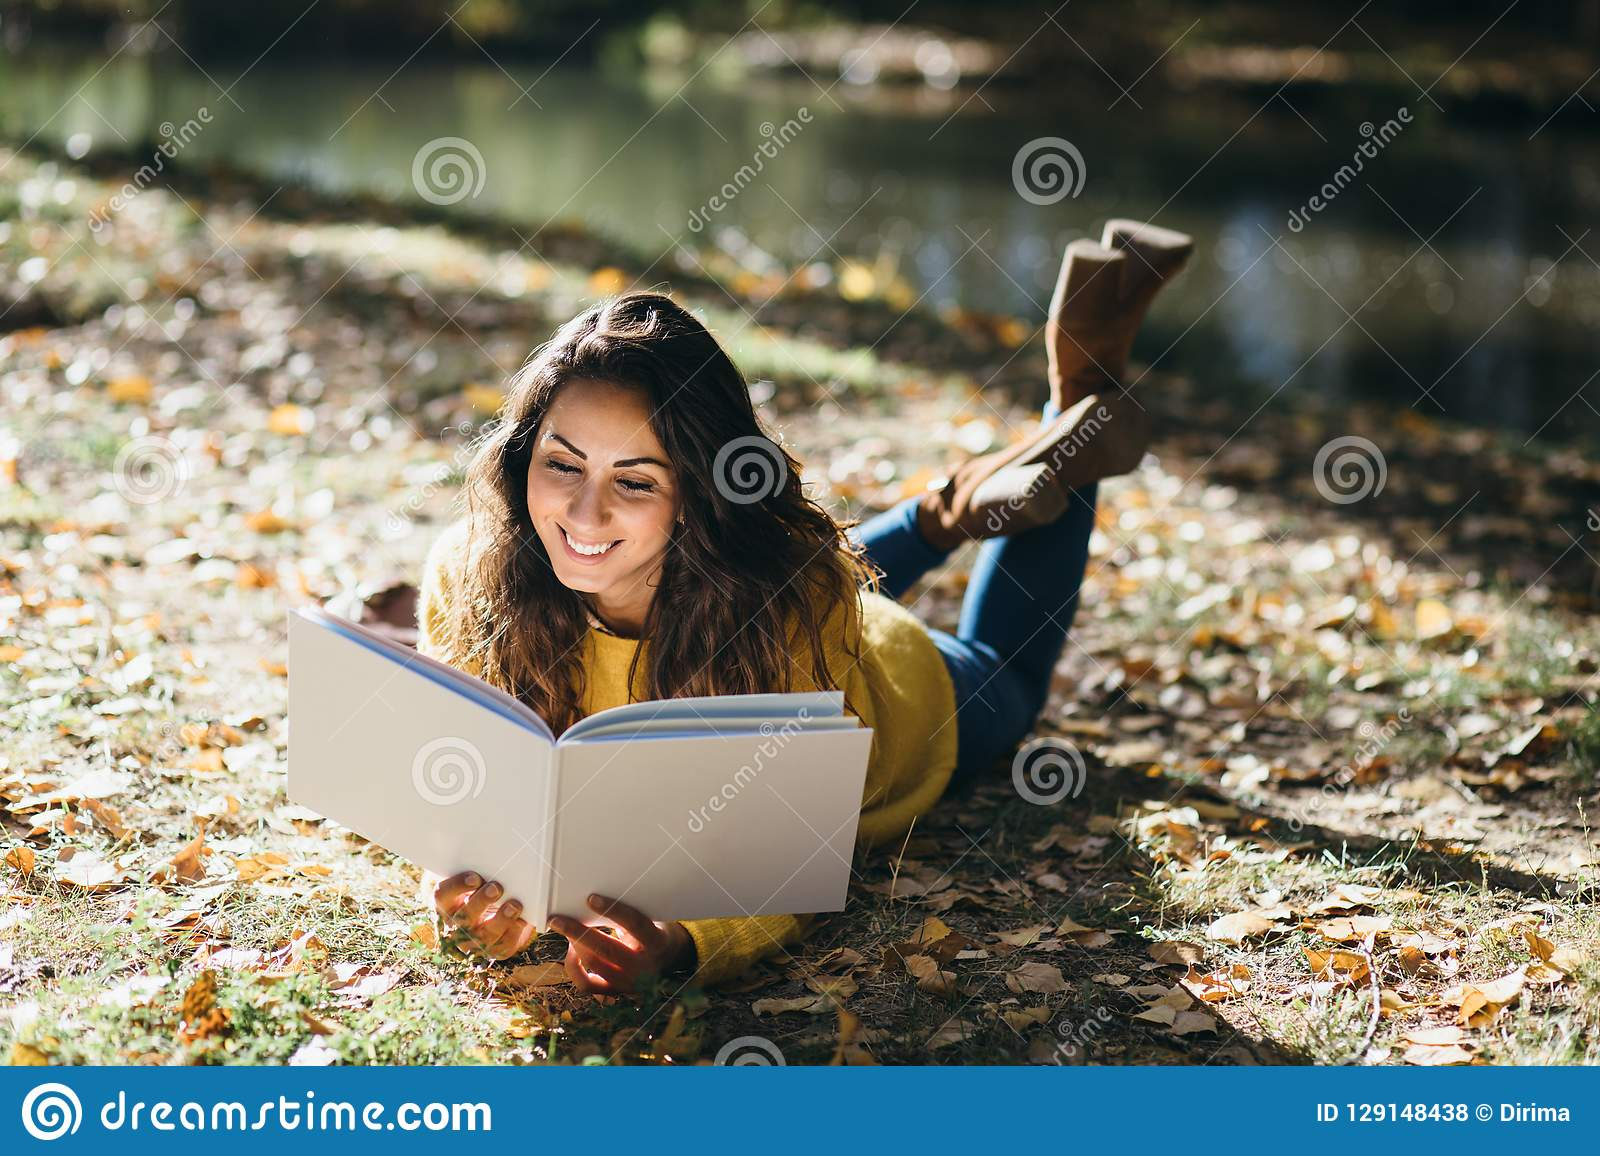 Woman reading in autumn outdoor